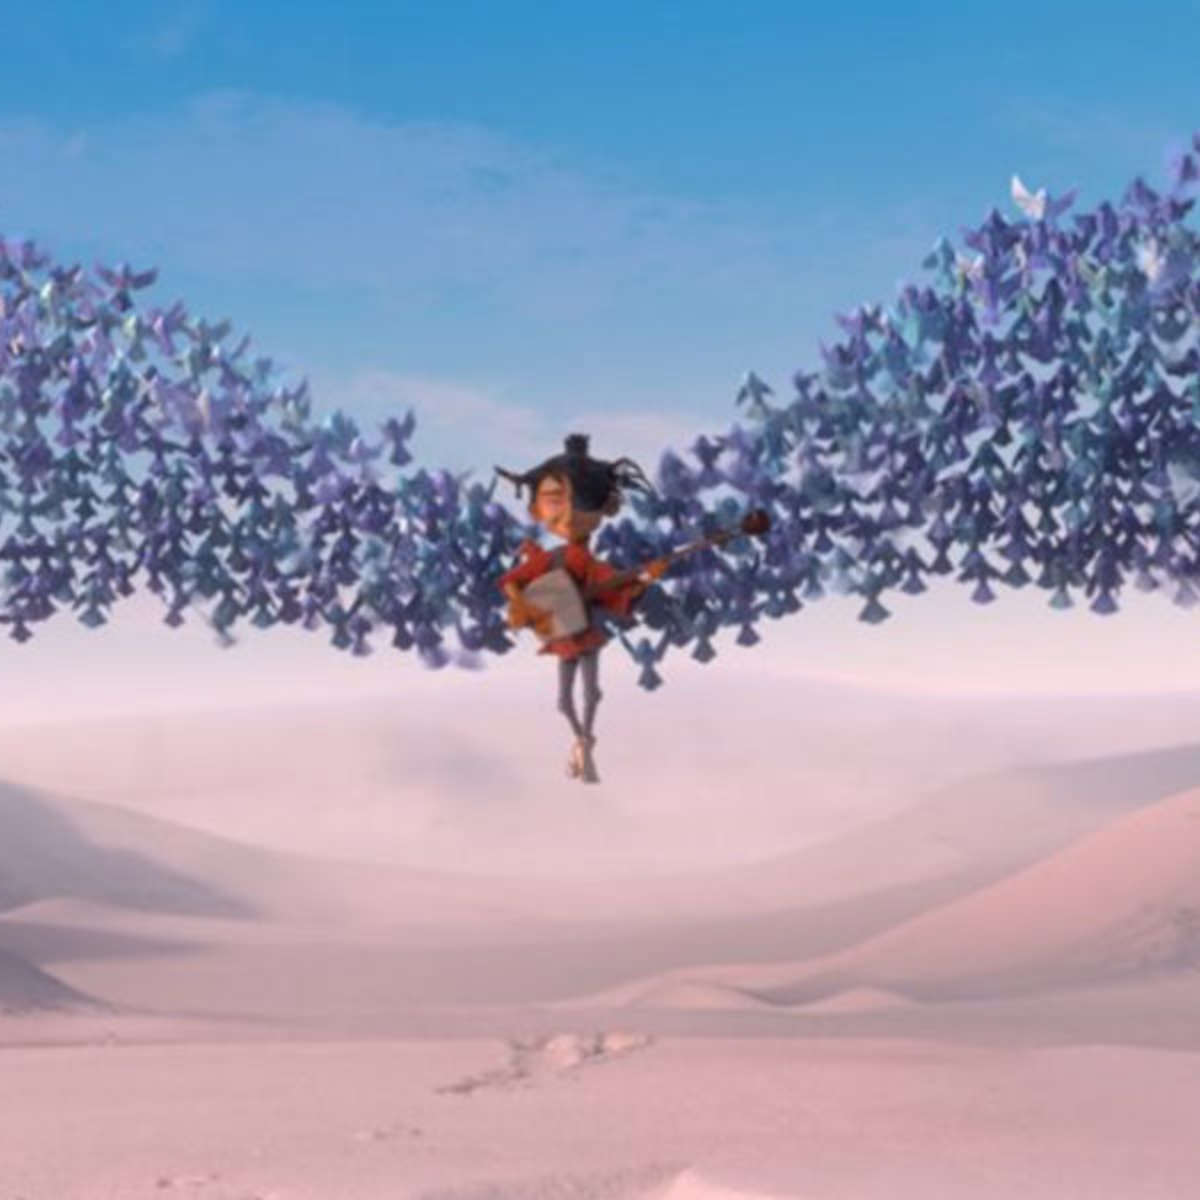 kubo-two-strings-movie-trailer-laika.jpg